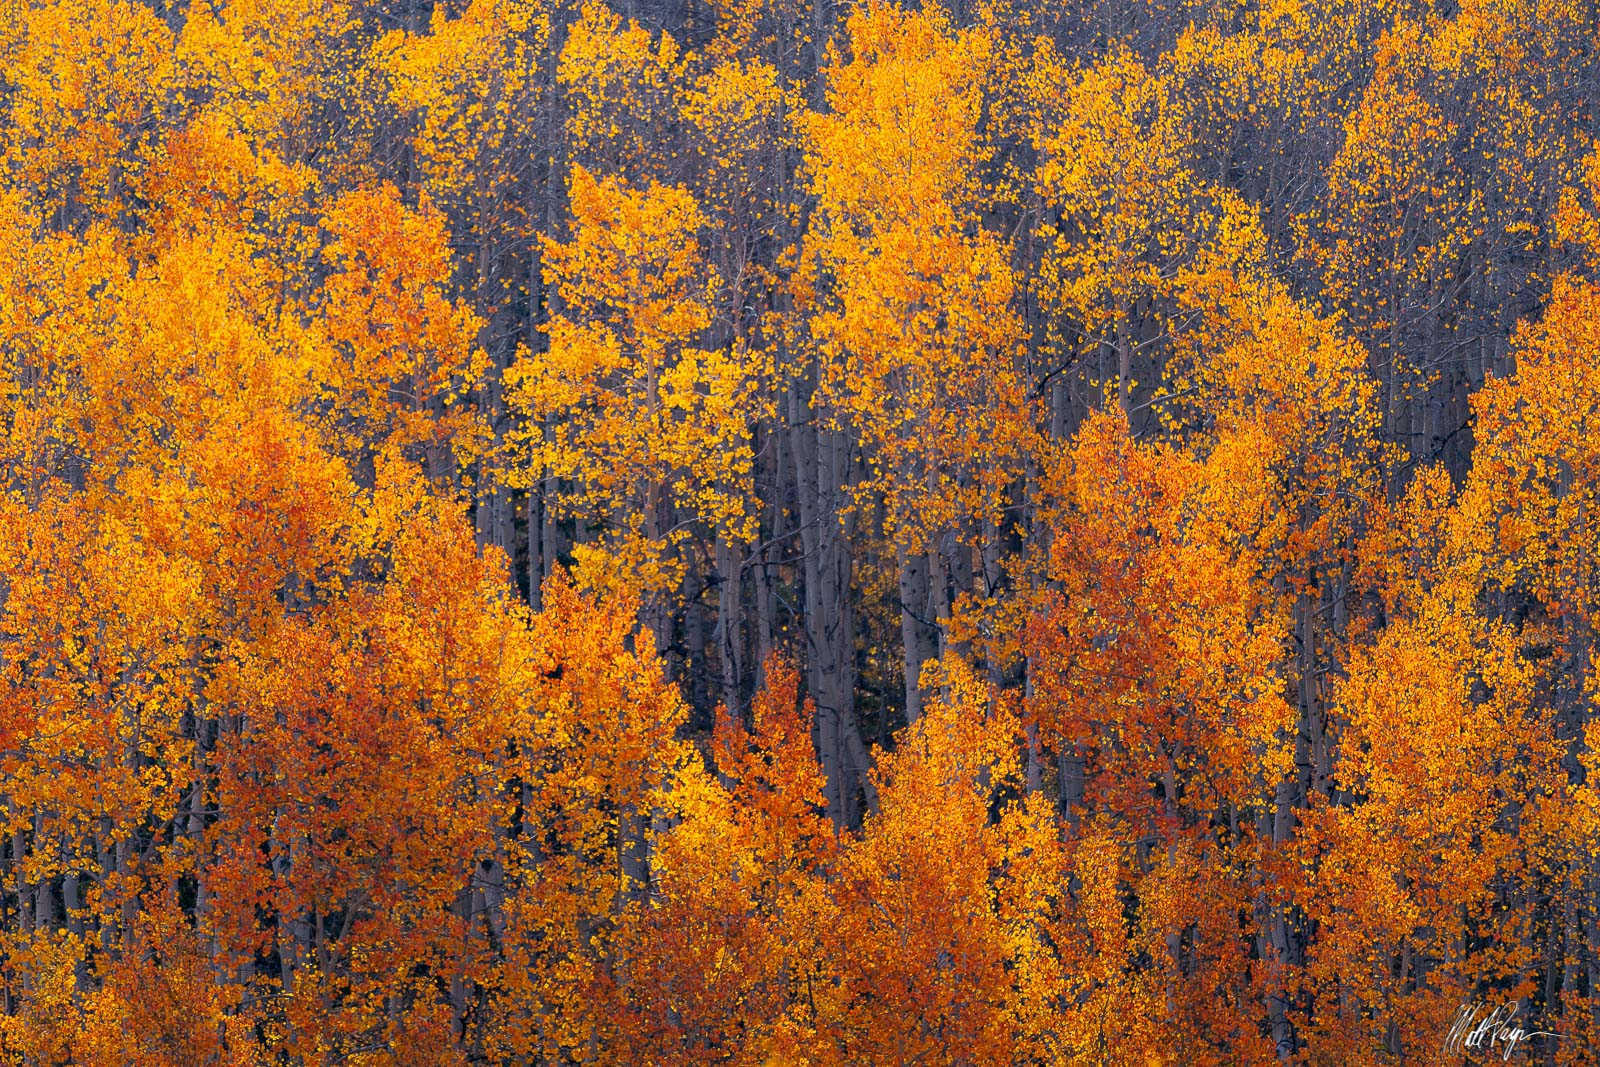 There's nothing more fun than to spend several days in the exact same spot in fall and watch as the leaves change color and blow...